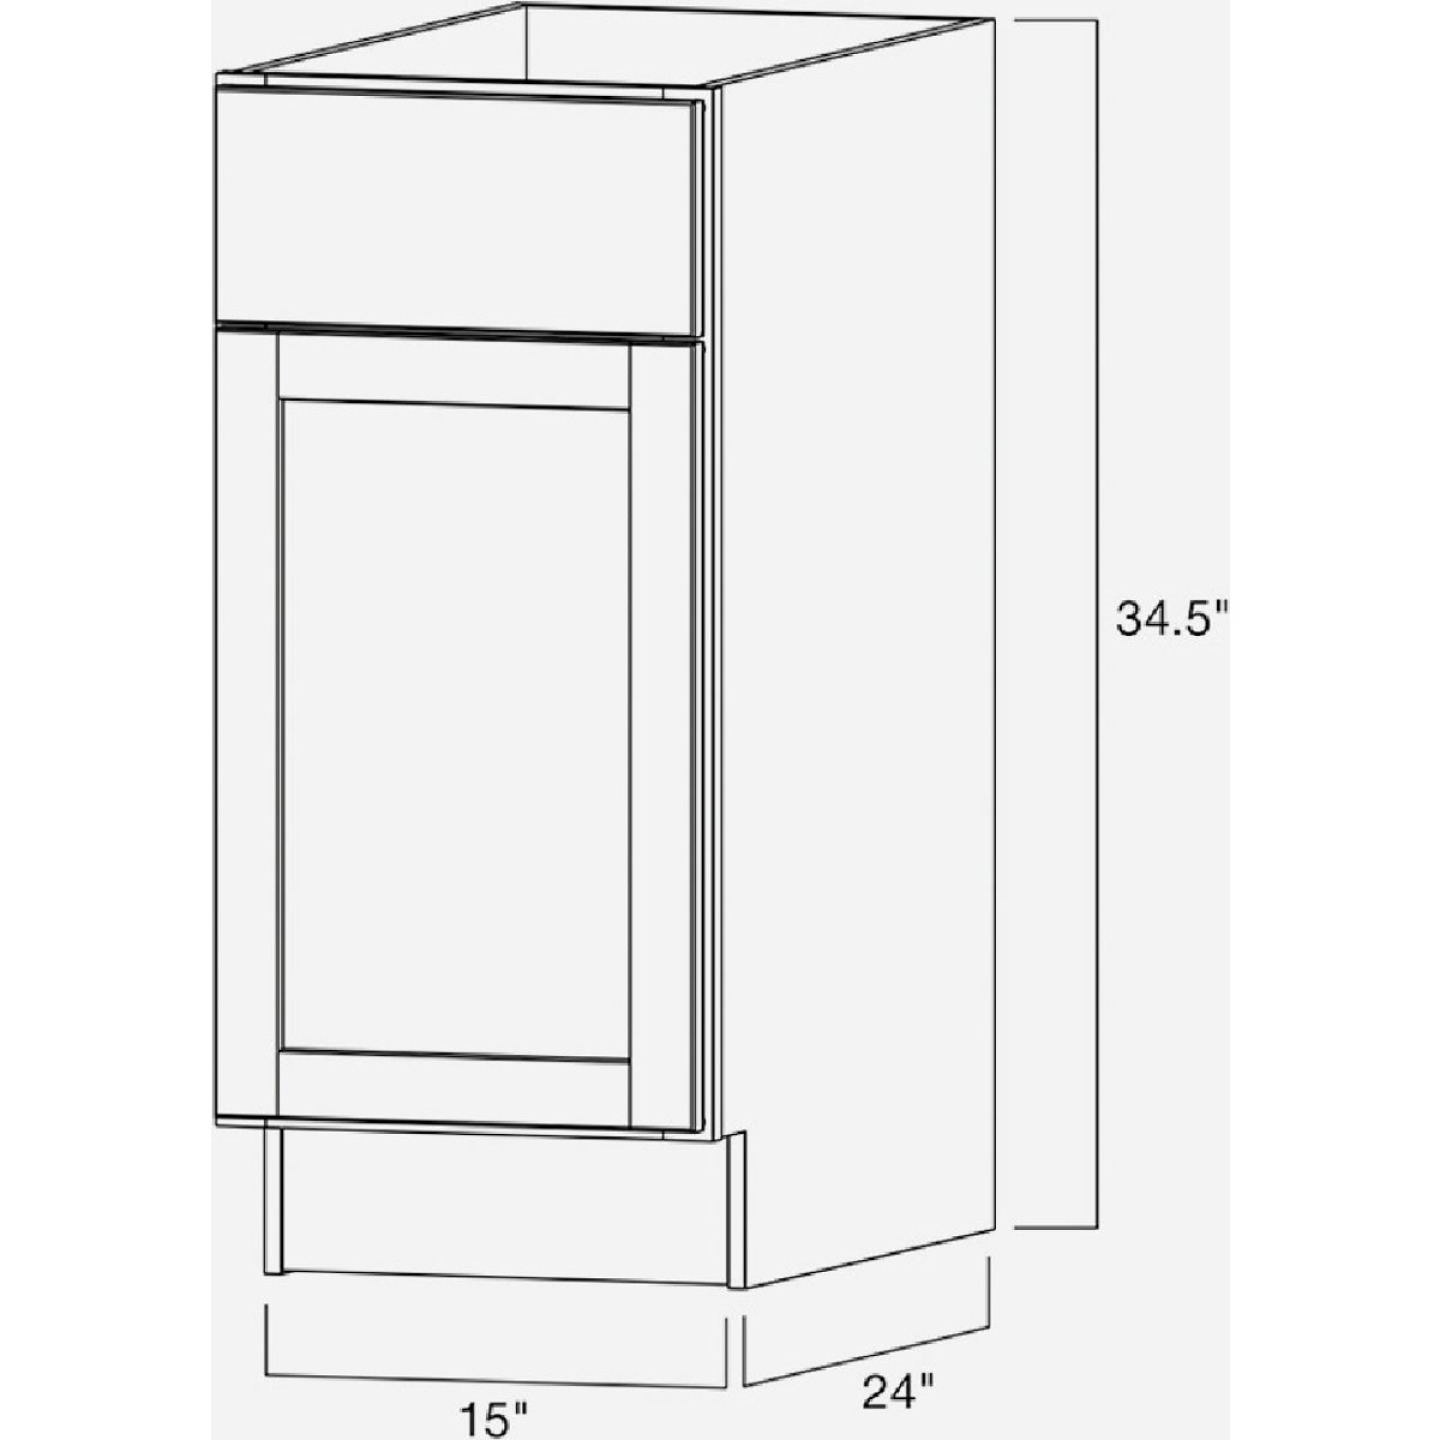 Continental Cabinets Andover Shaker 15 In. W x 34 In. H x 24 In. D White Thermofoil Base Kitchen Cabinet Image 4